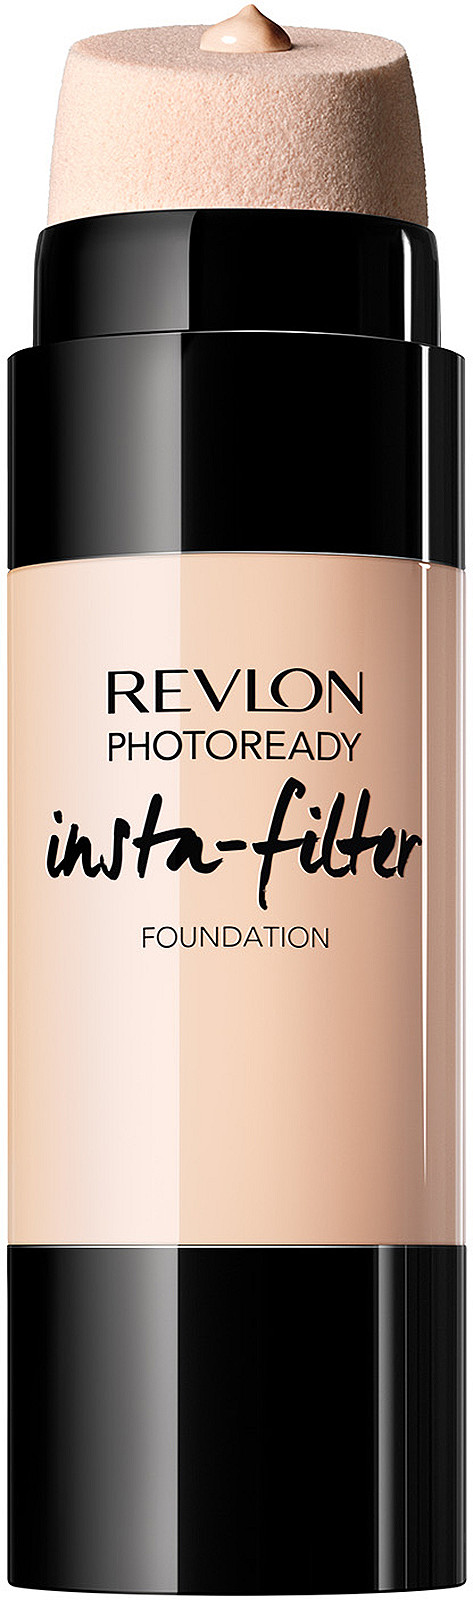 PhotoReady Candid Natural Finish Anti-Pollution Foundation by Revlon #11